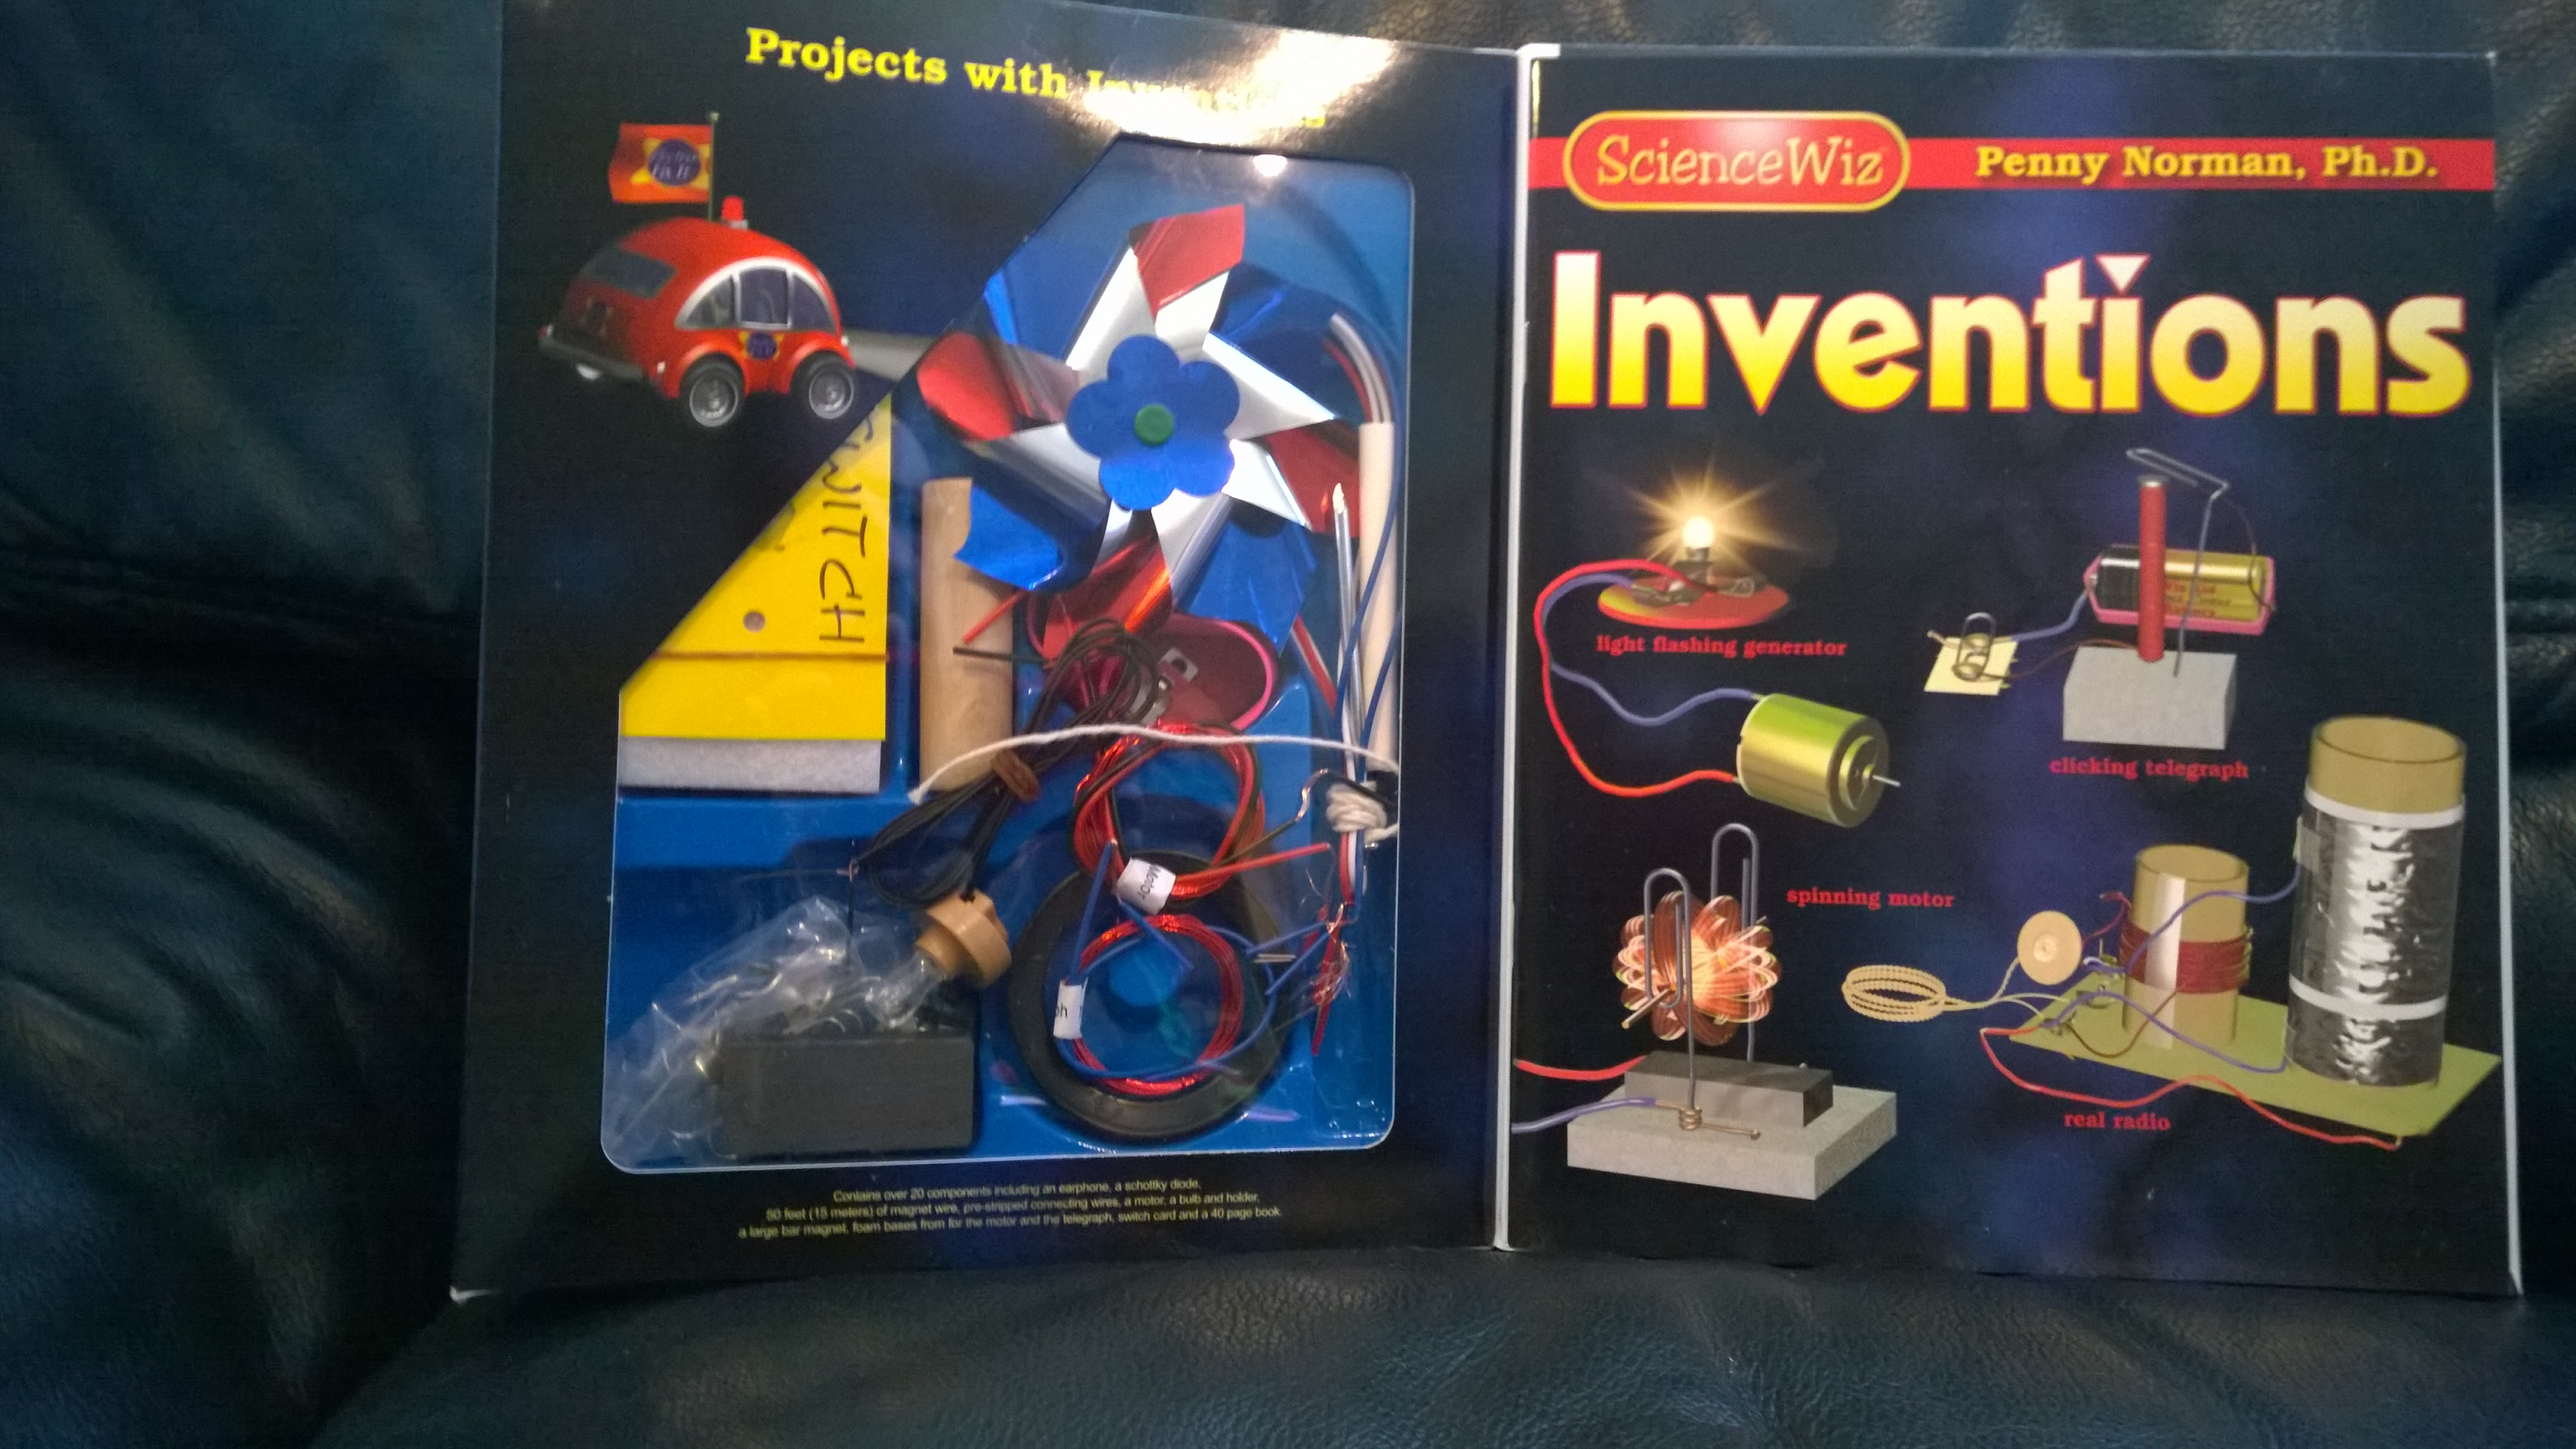 Science Wiz Inventions Kit Penny Norman, Ph.D. Ages 8 - 80 Electricity Projects